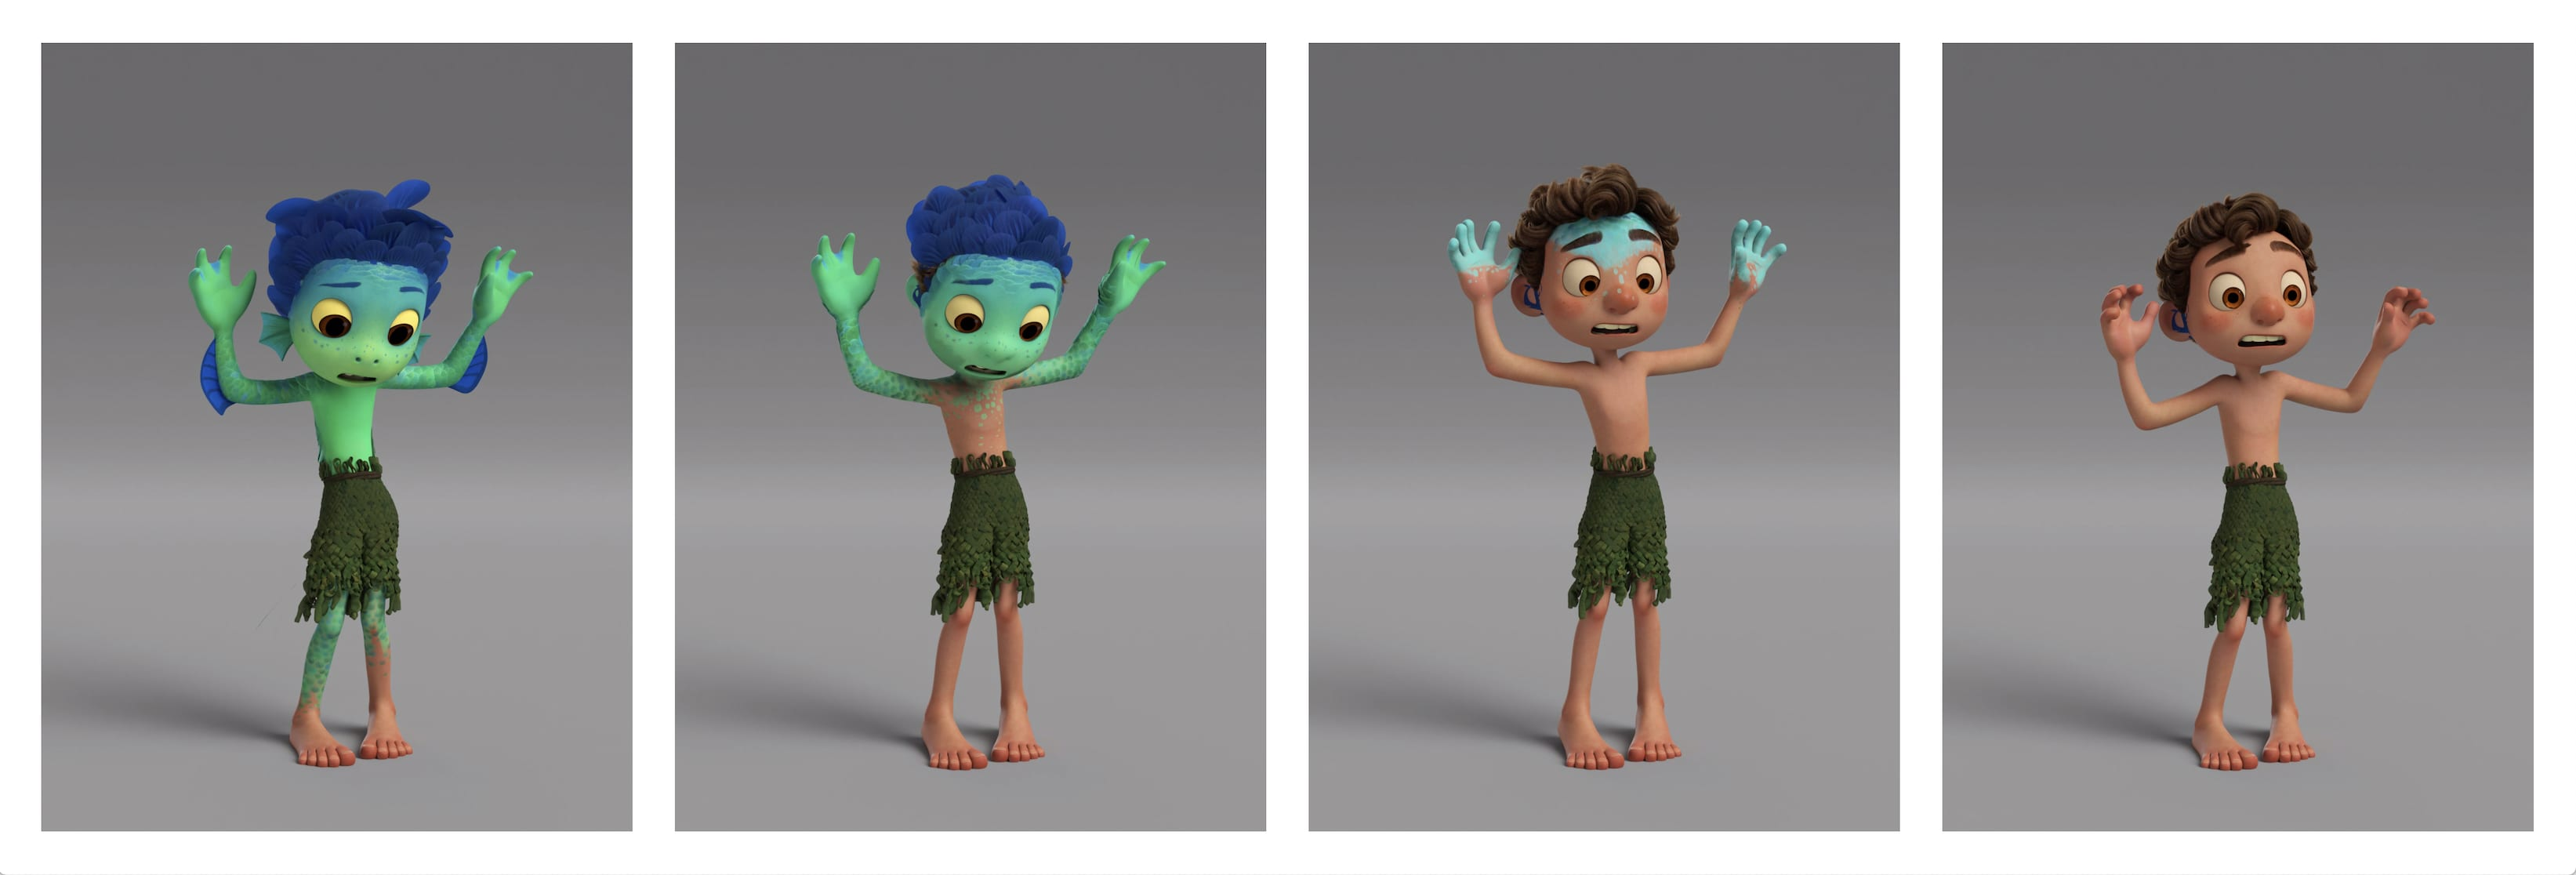 progression of Luca's transformation from sea monster to human